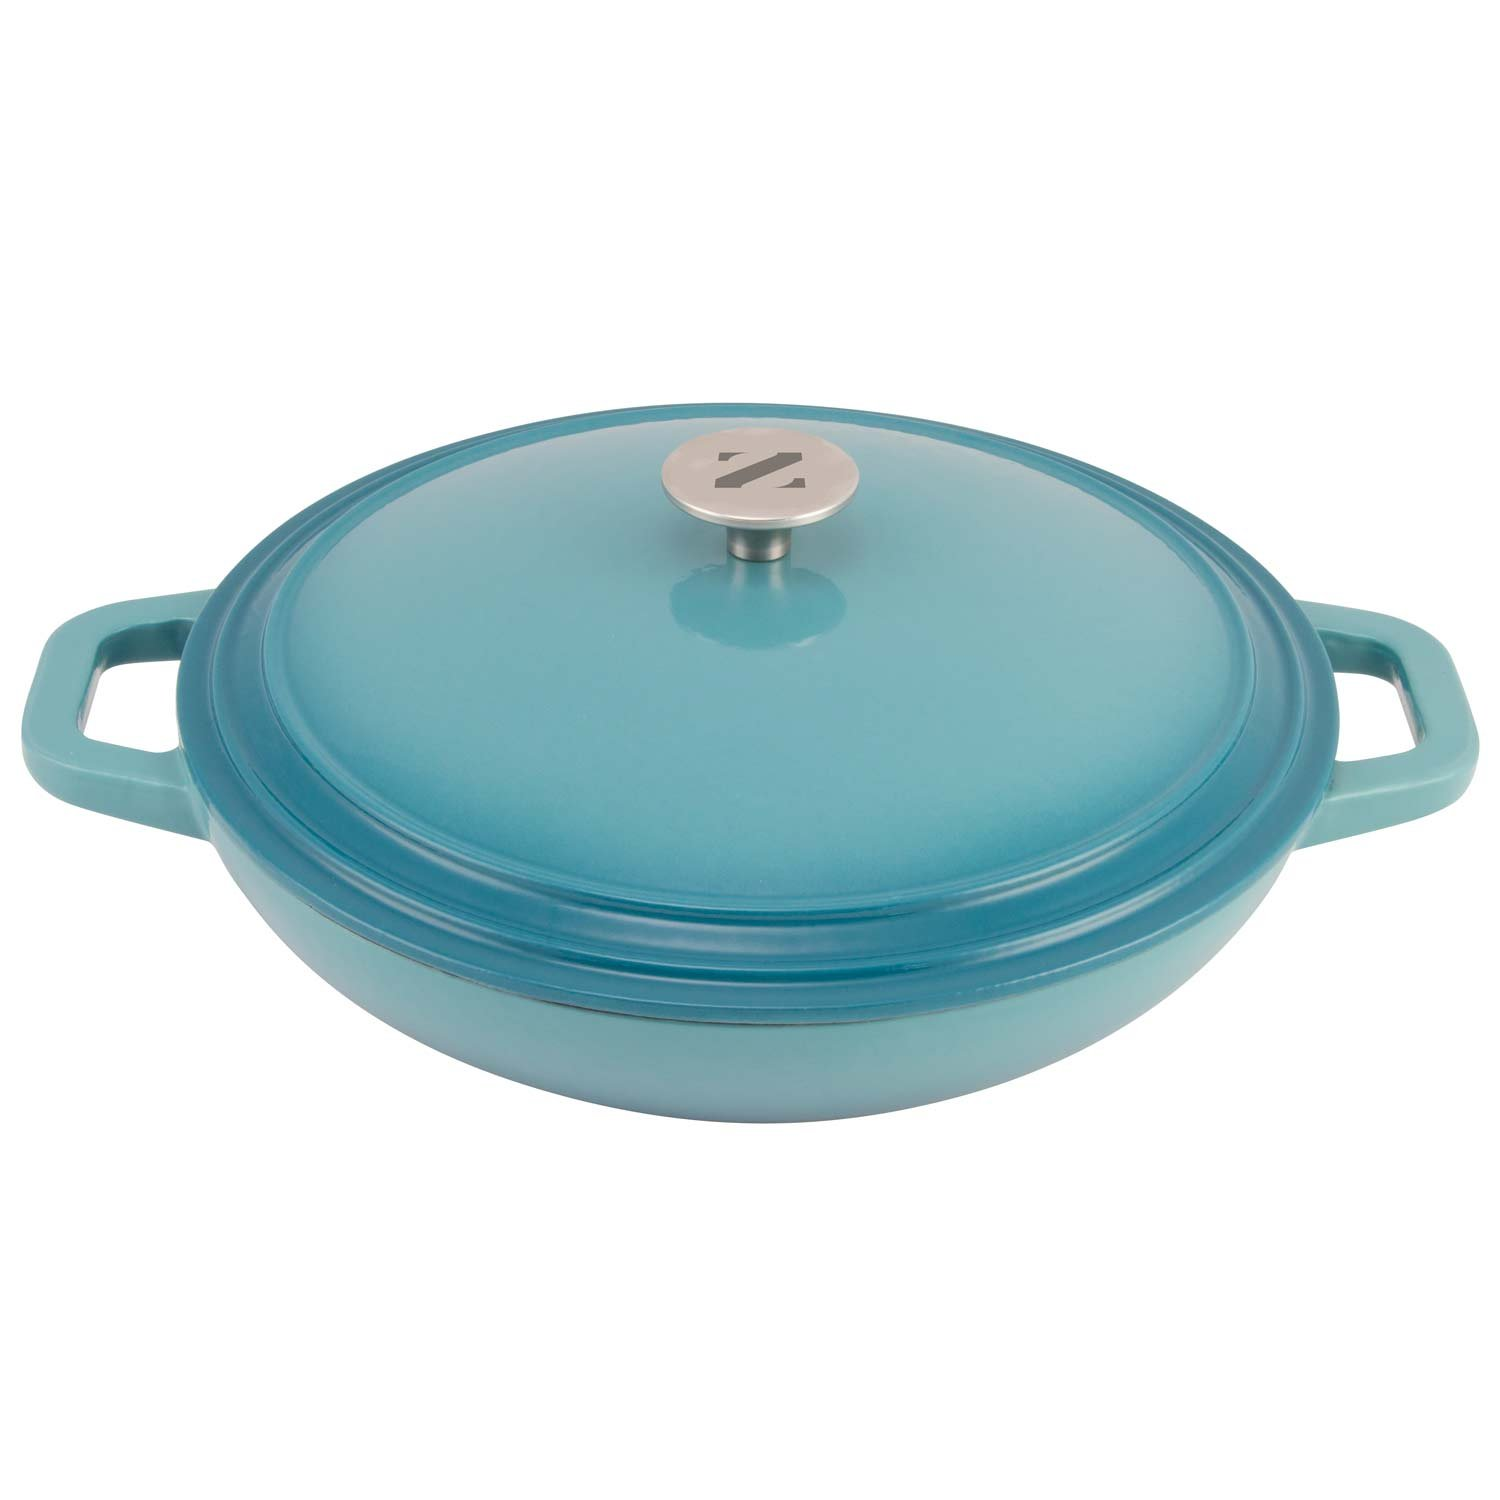 Zelancio Cookware 3-Quart Enameled Cast Iron Casserole Dish with lid, Perfect for Braising, Slow Cooking, Simmering and Baking, Teal